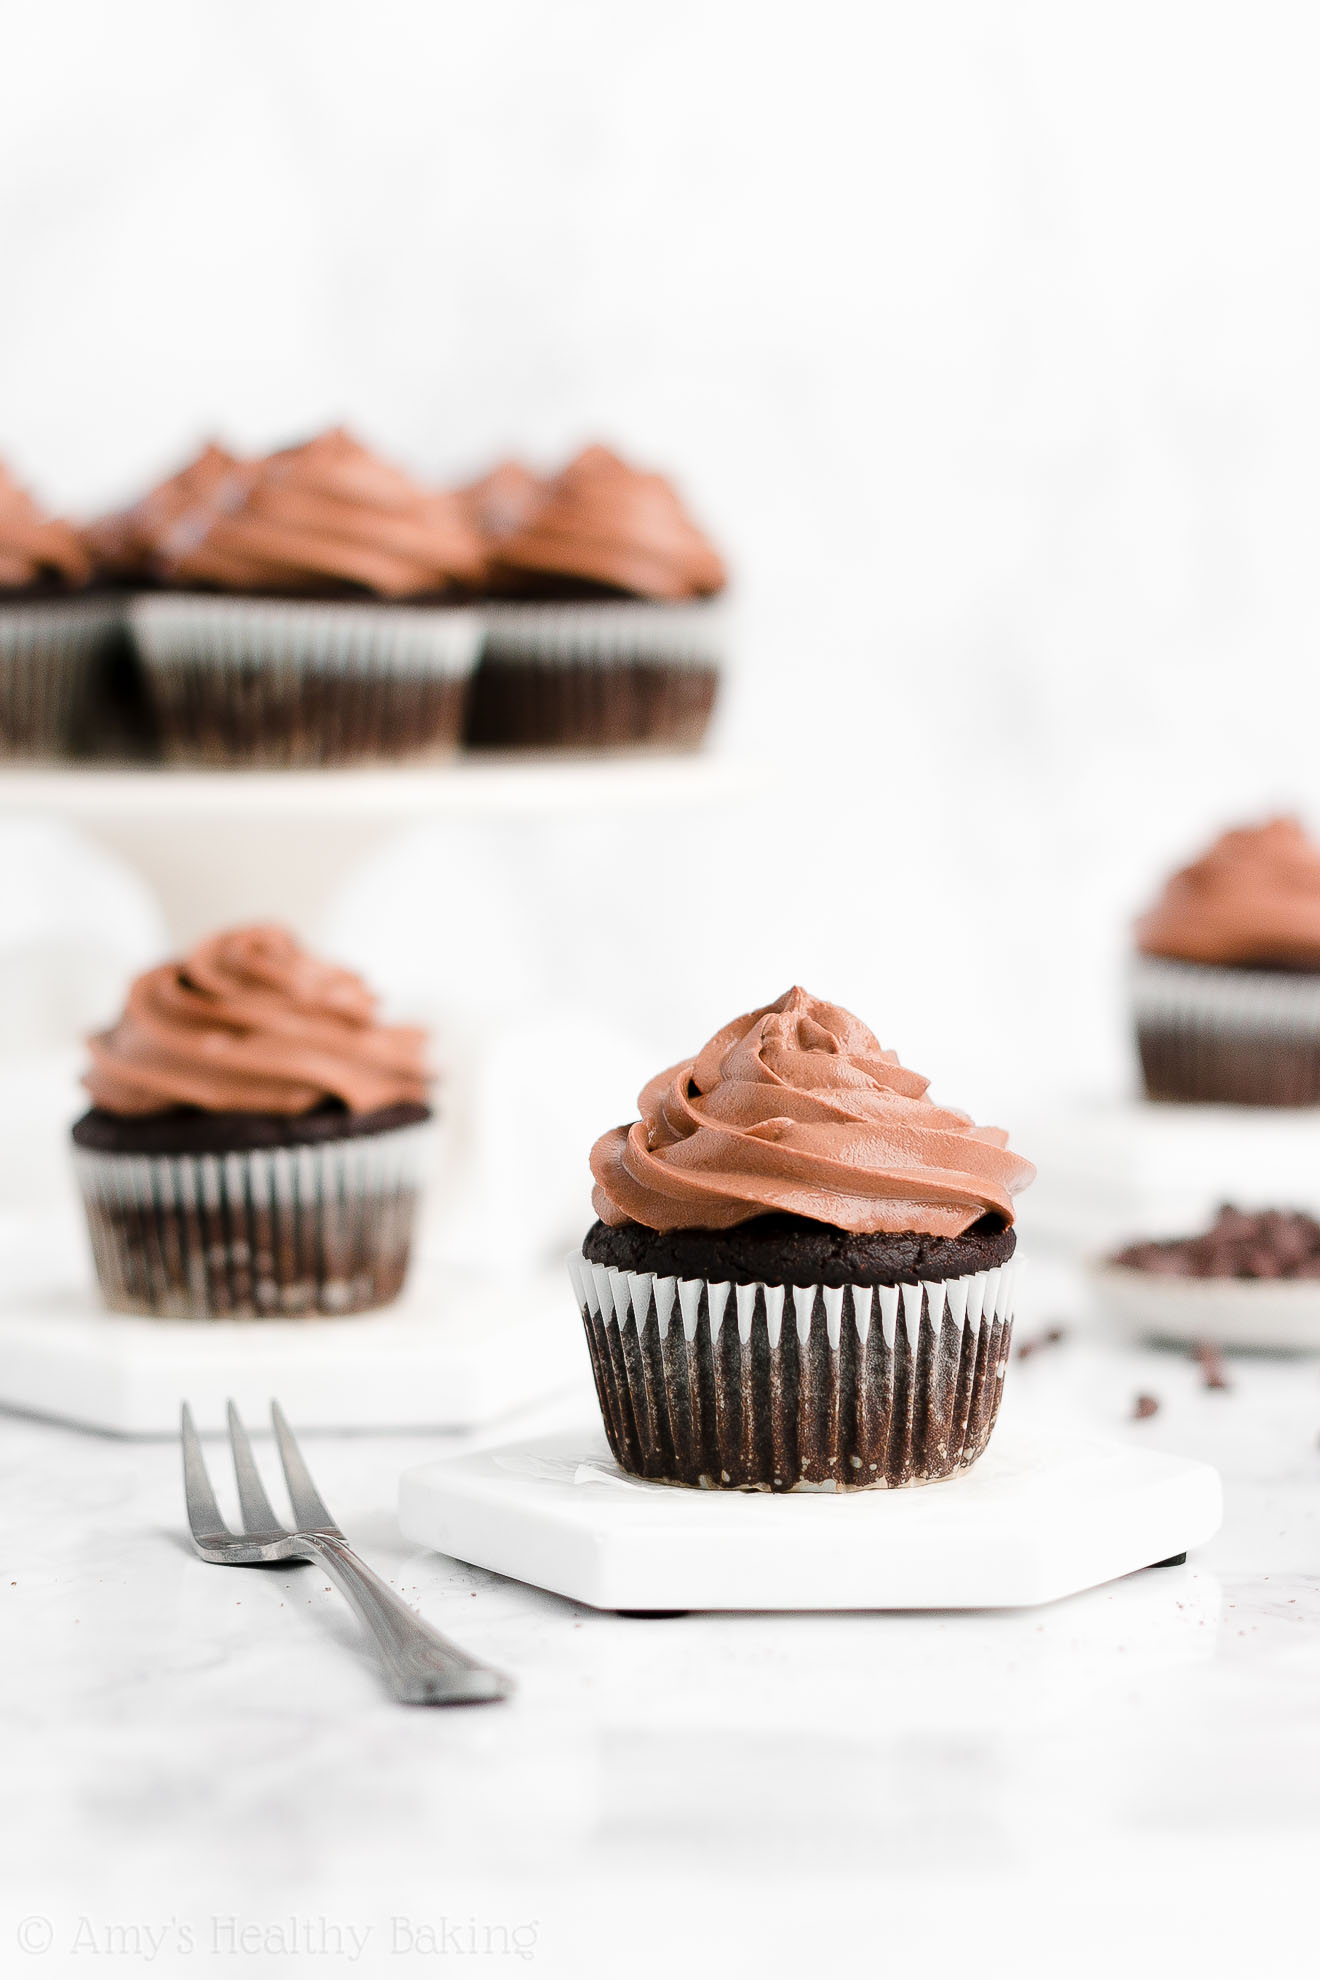 Best Easy Healthy Gluten Free Super Moist One-Bowl Dark Chocolate Cupcakes